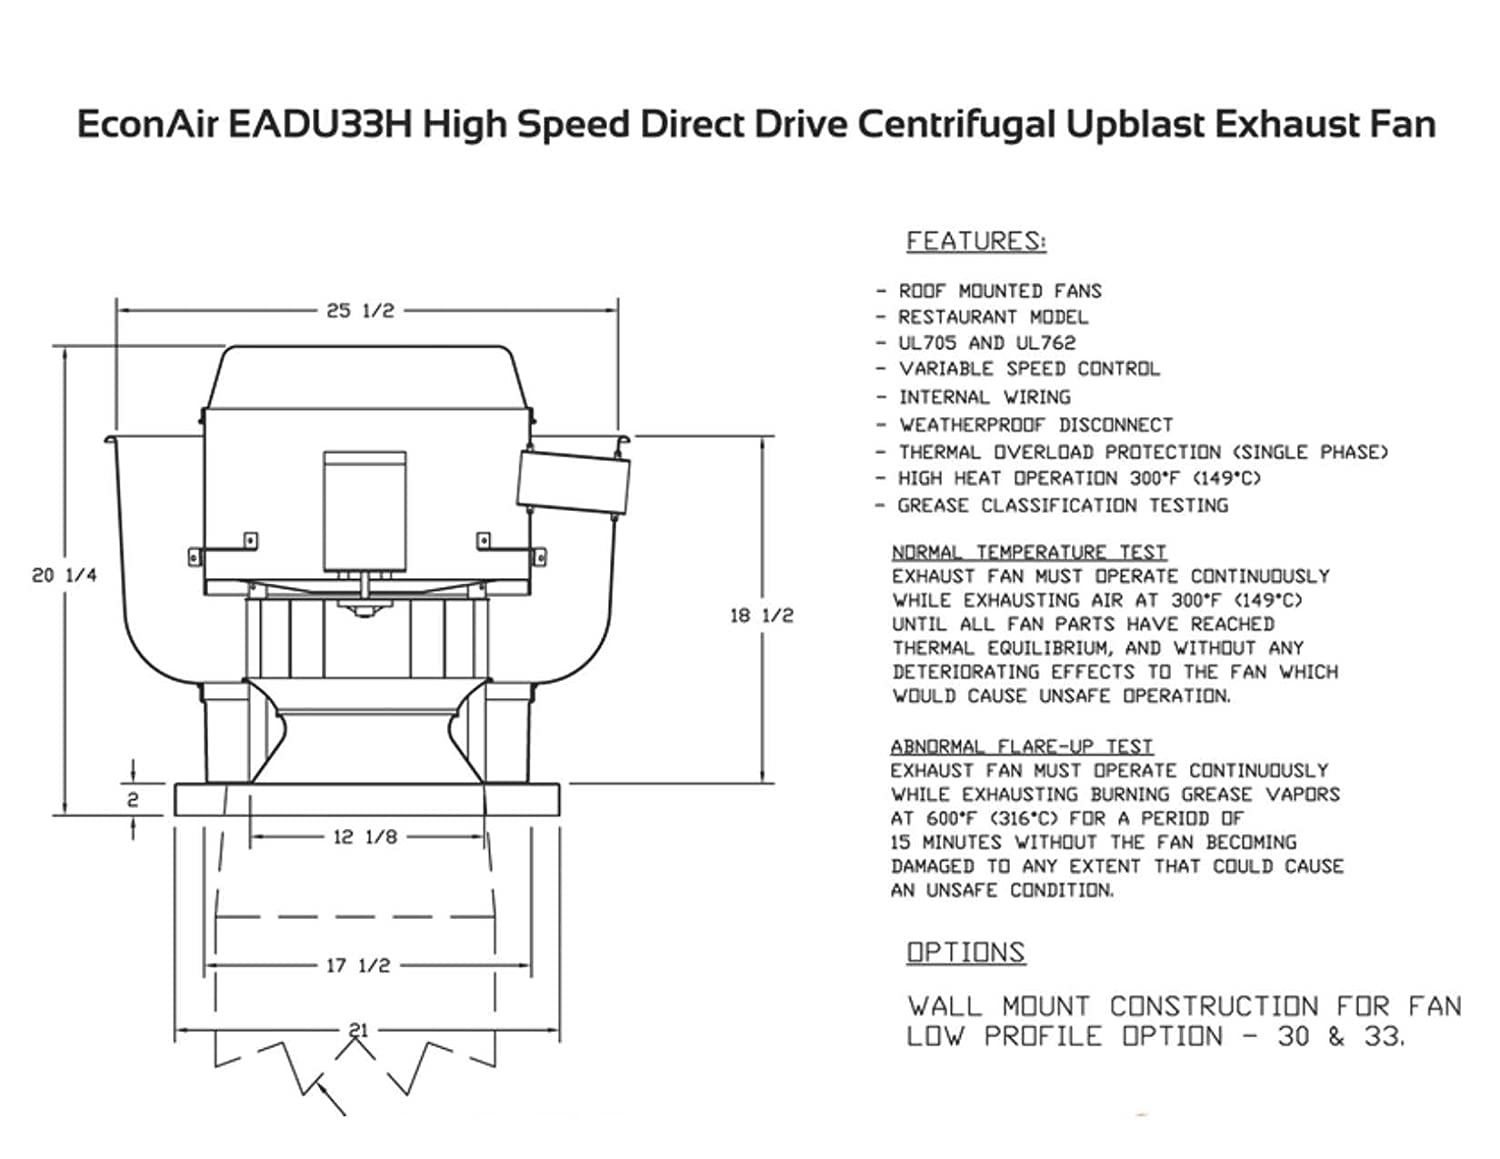 1000 Cfm Direct Drive Upblast Restaurant Exhaust Fan With 1175 Single Phase Disconnect Wiring Diagram Wheel Motor 333 Hp 115 V